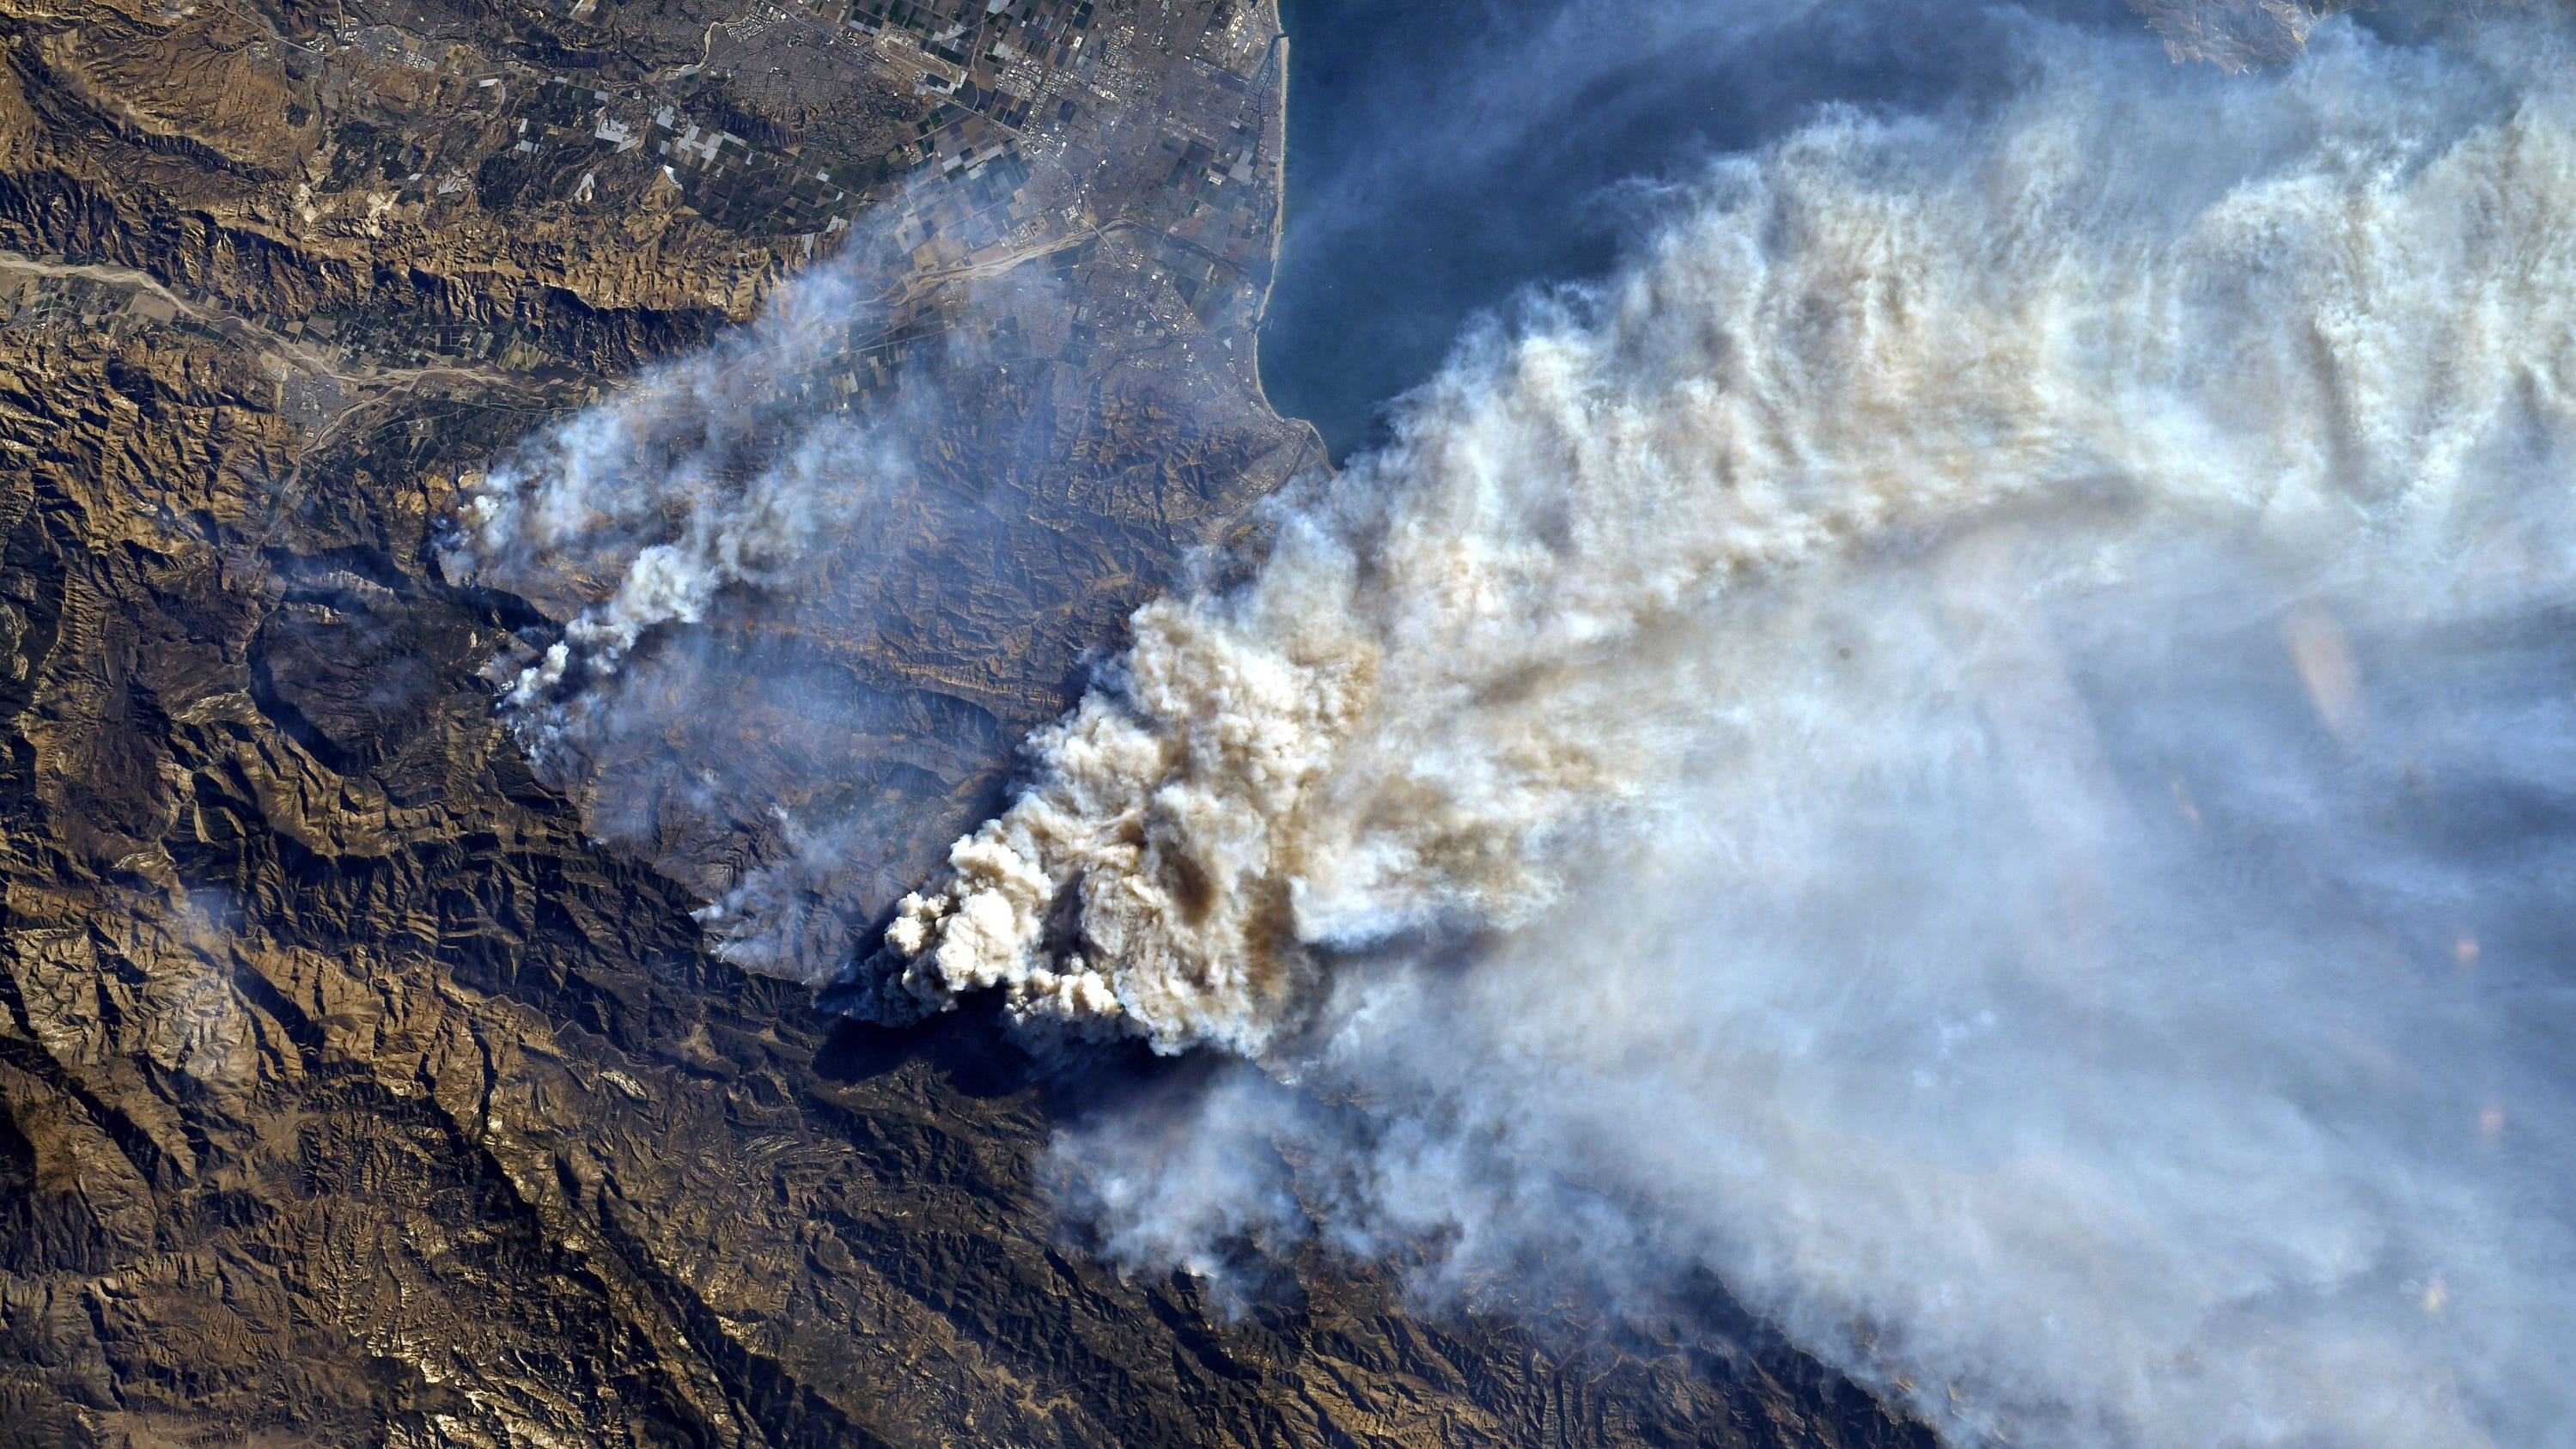 A look at the environmental effects of wildfire, including smoke and ruin, climate change and regeneration.